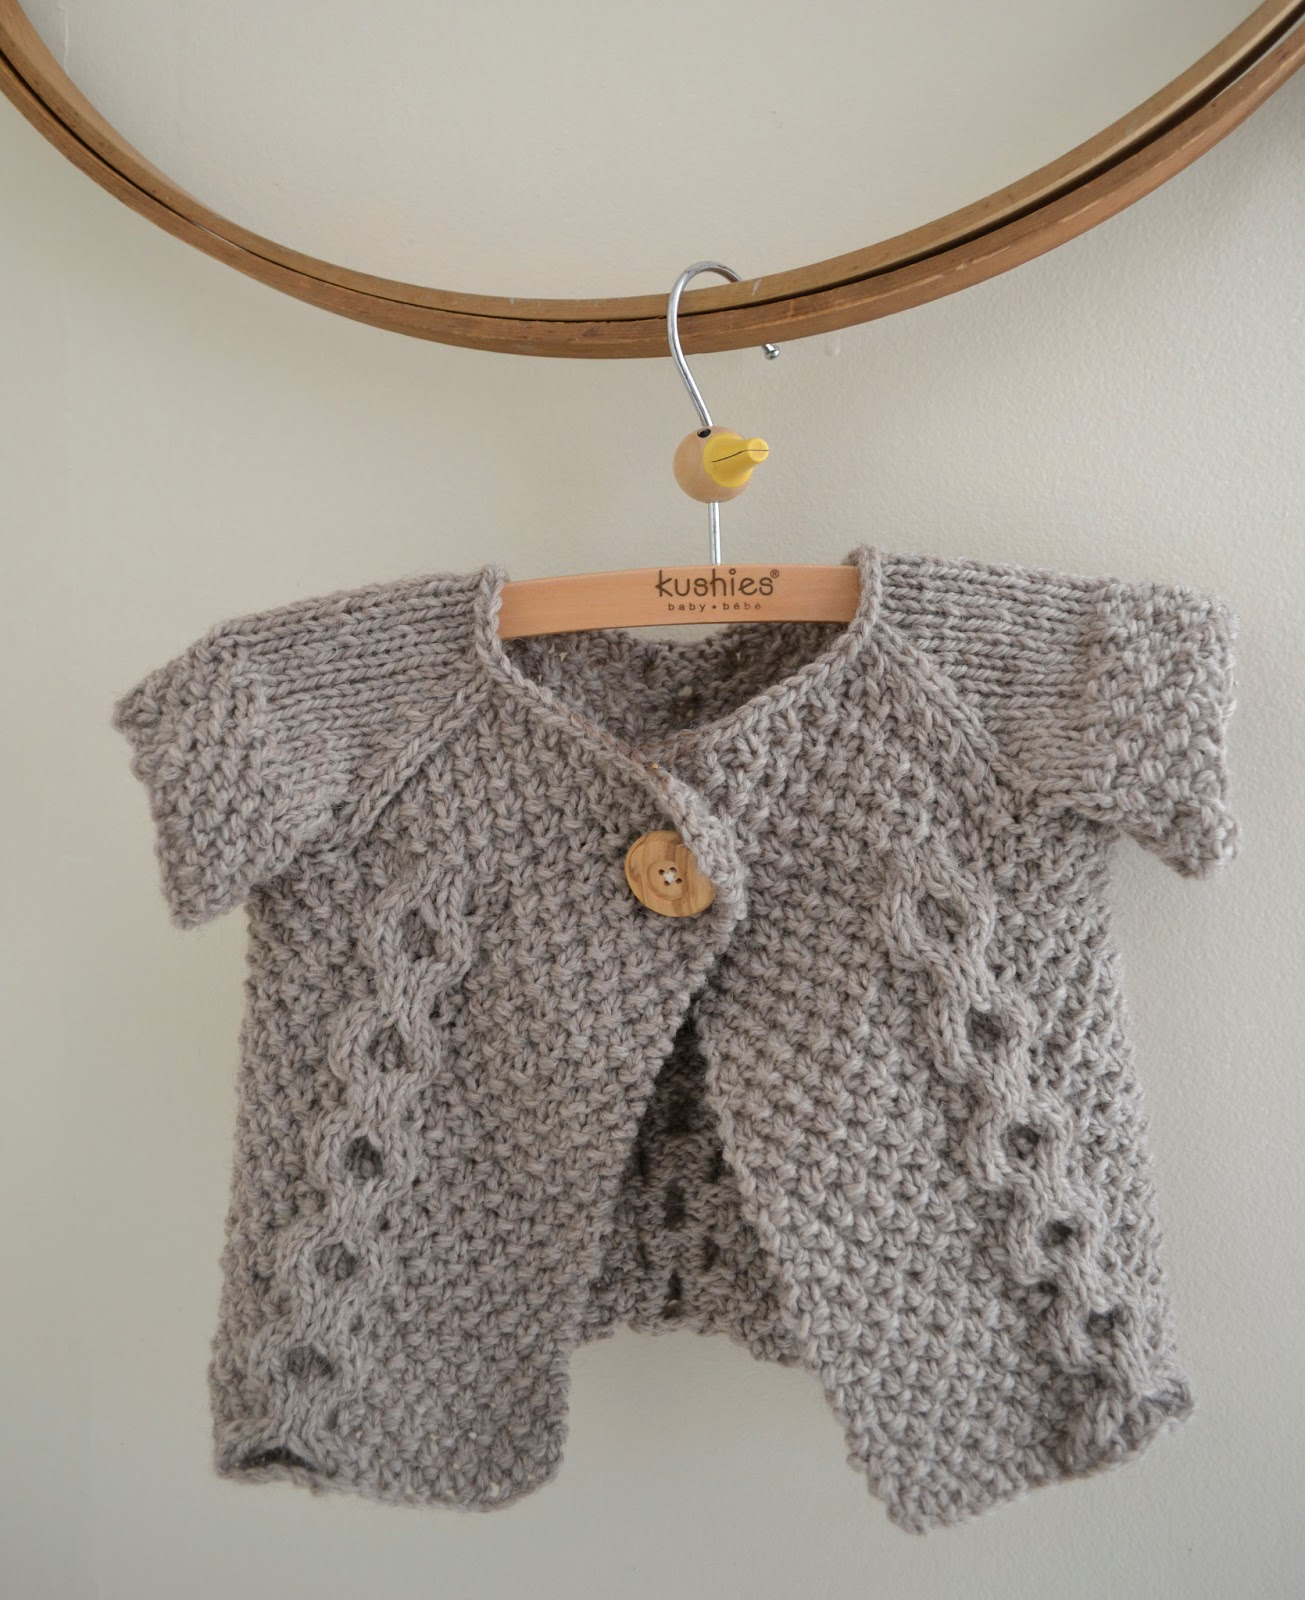 Double Knit Baby Patterns Free : Baby Cardigan Knitting Pattern Car Interior Design